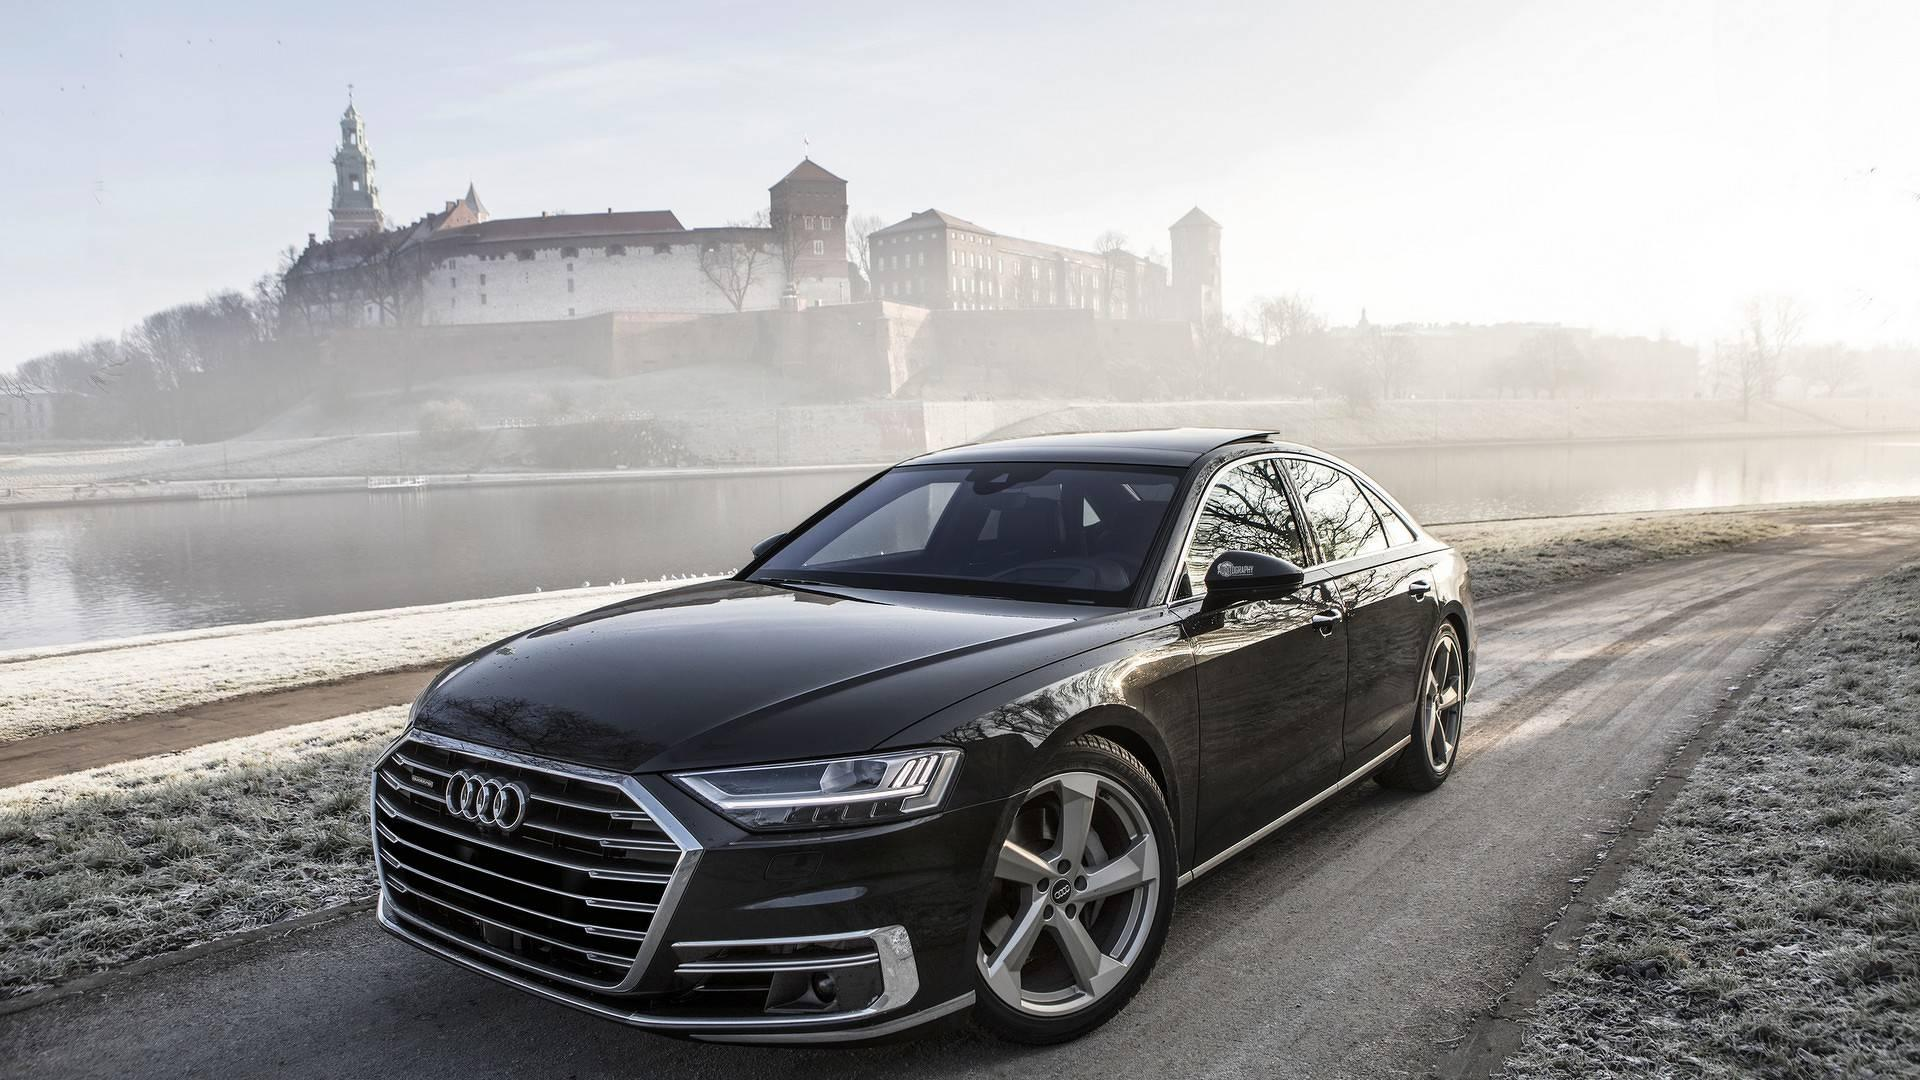 You Don't Have To Like The Audi A8 To Enjoy These Stunning Image